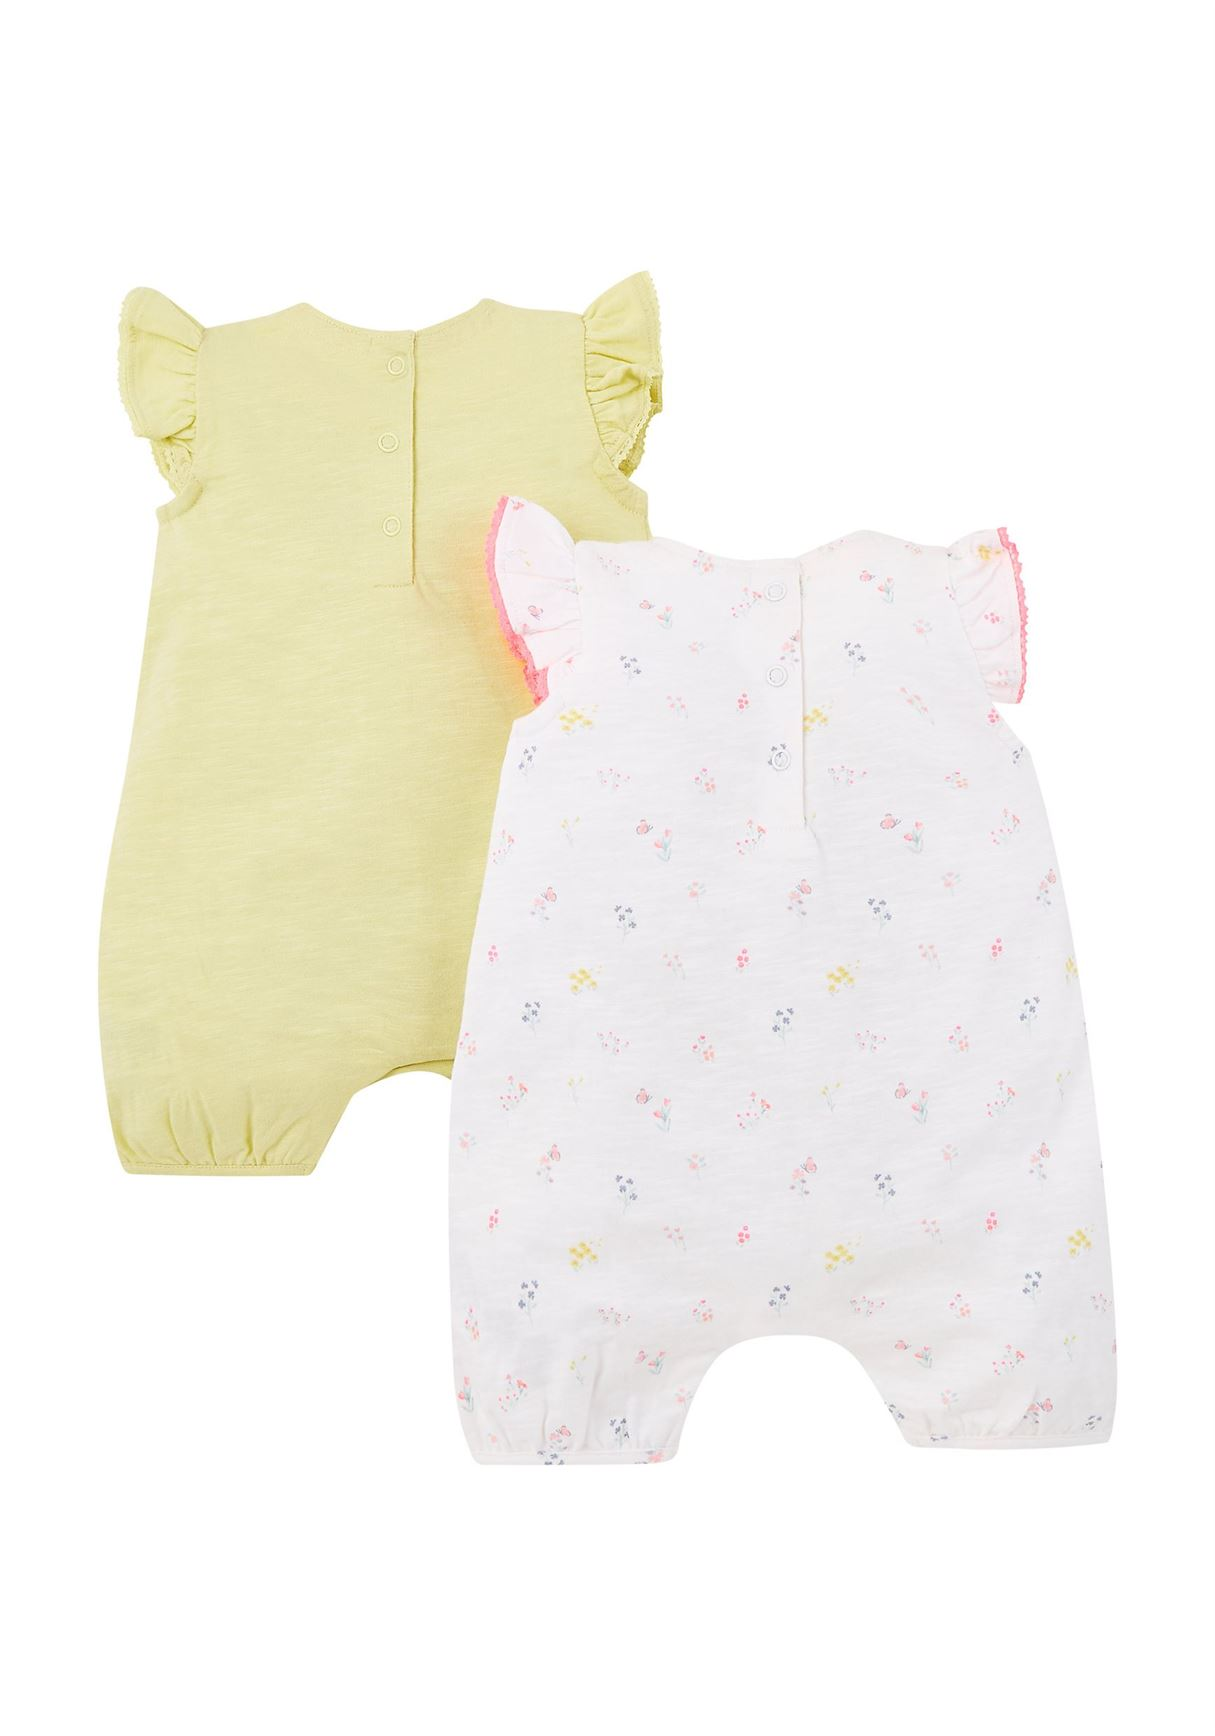 Mothercare Girls Assorted Printed Pack of 2 Rompers